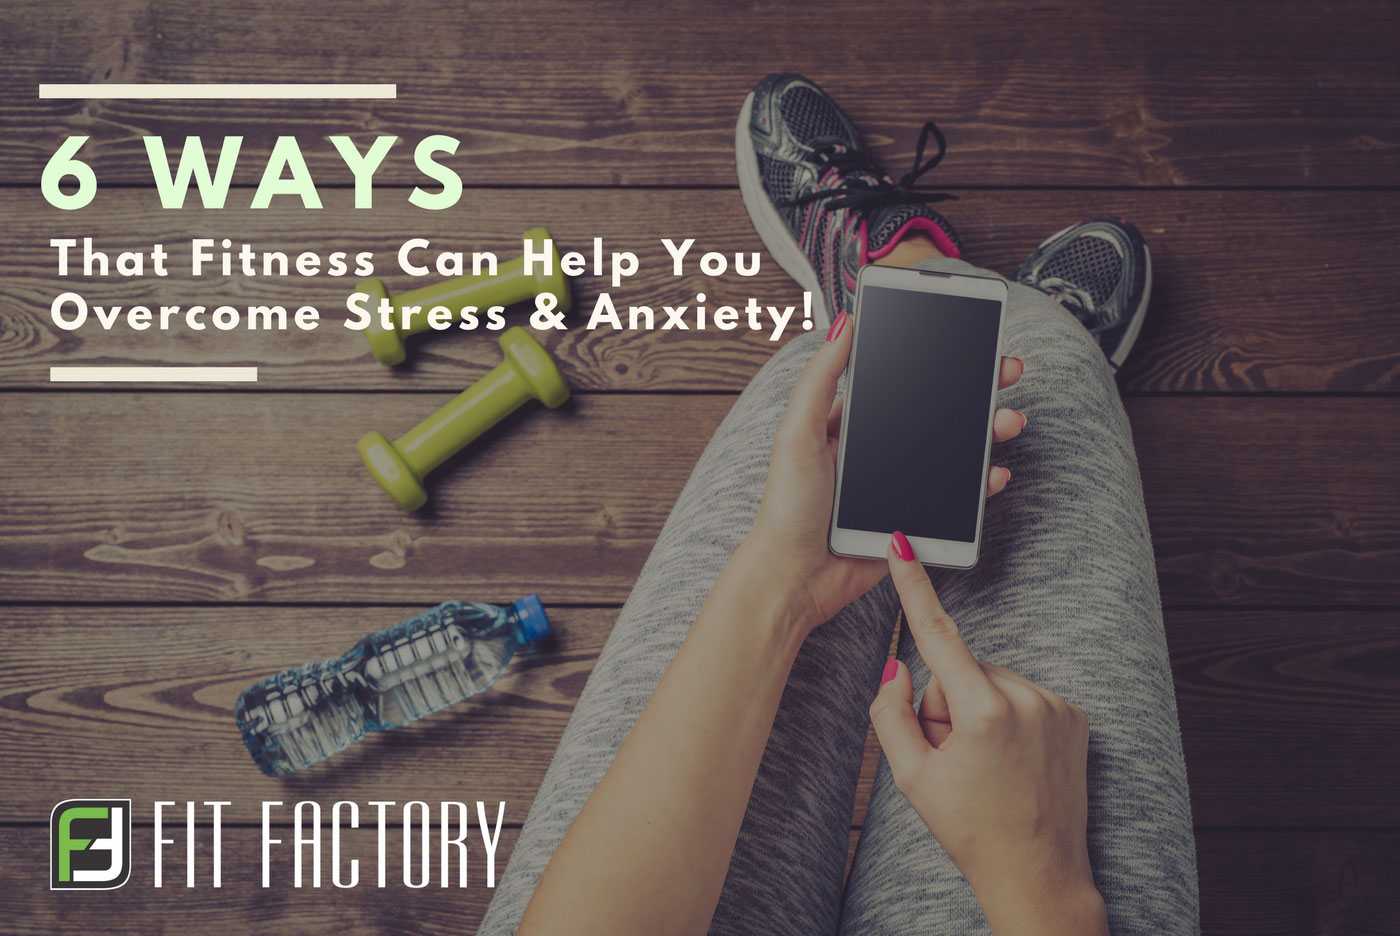 6 Ways That Fitness Can Help You Overcome Stress and Anxiety